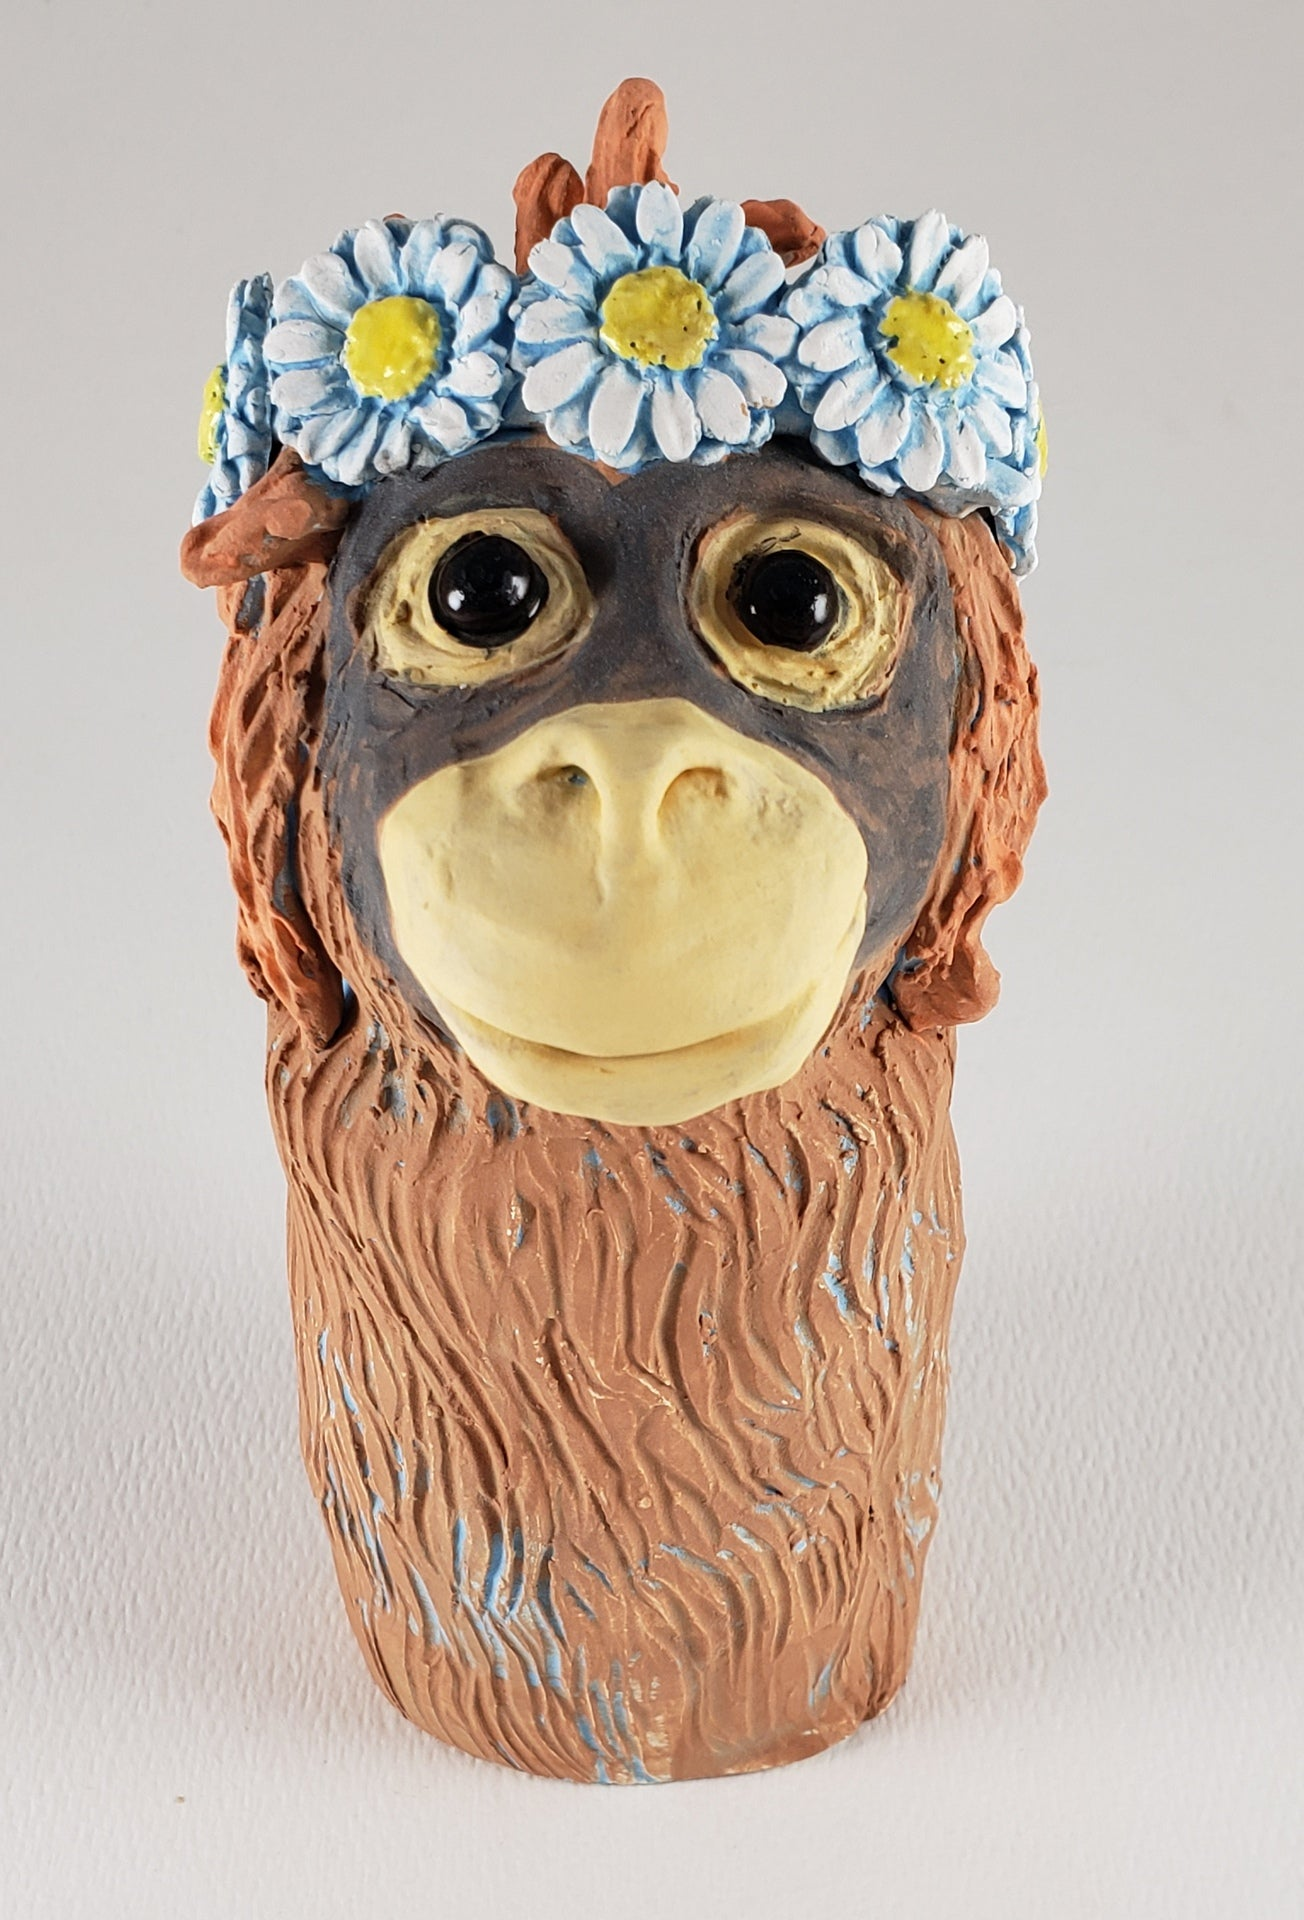 Mr. Smith the Orangutan Wears a Daisy Headband - Artworks by Karen Fincannon